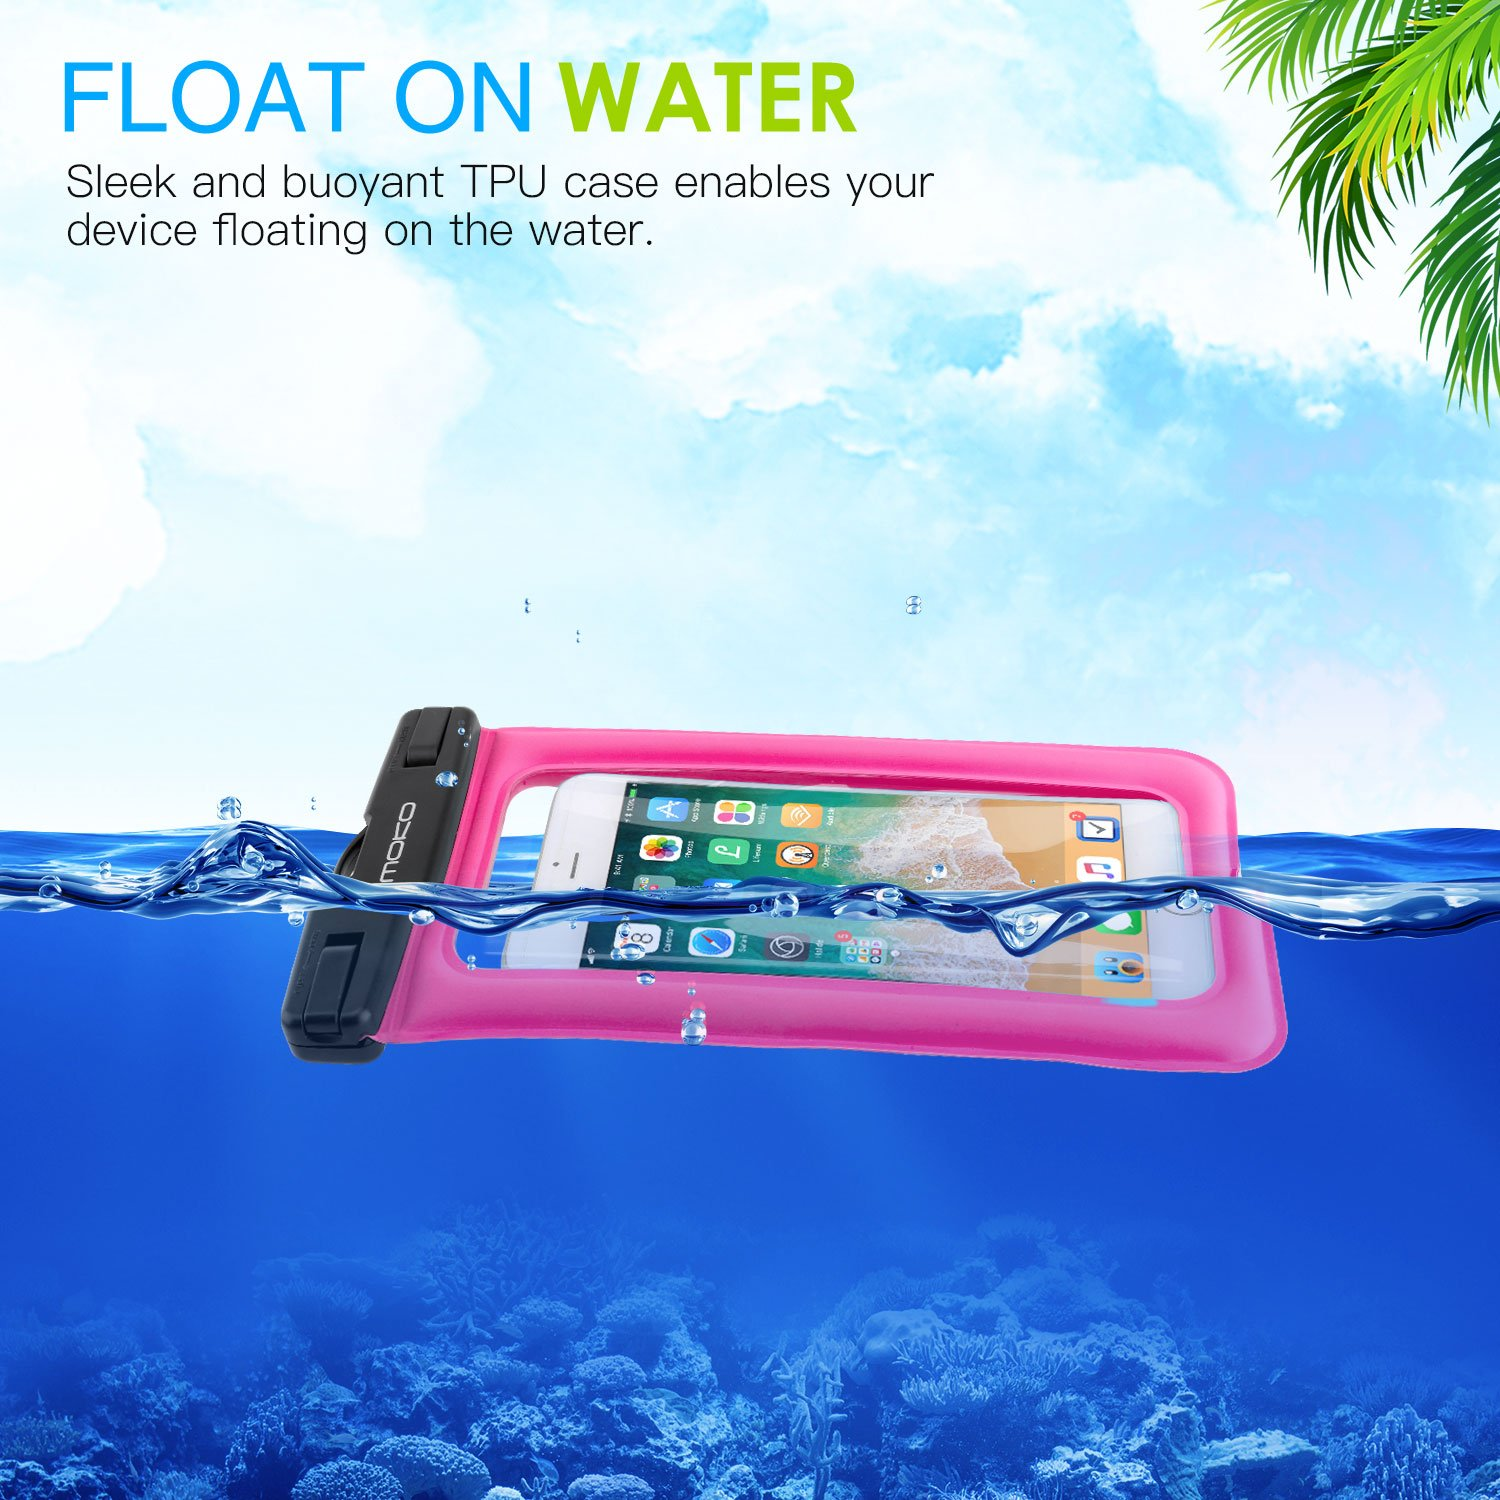 MoKo Floating Waterproof Phone Case [3 Pack], Universal Cellphone Pouch Dry Bag with Armband Neck Strap for iPhone X/8 Plus/8/7/6S Plus, Samsung Galaxy S9/S8 Plus, Note 9/8, Huawei, Google Nexus by MoKo (Image #2)